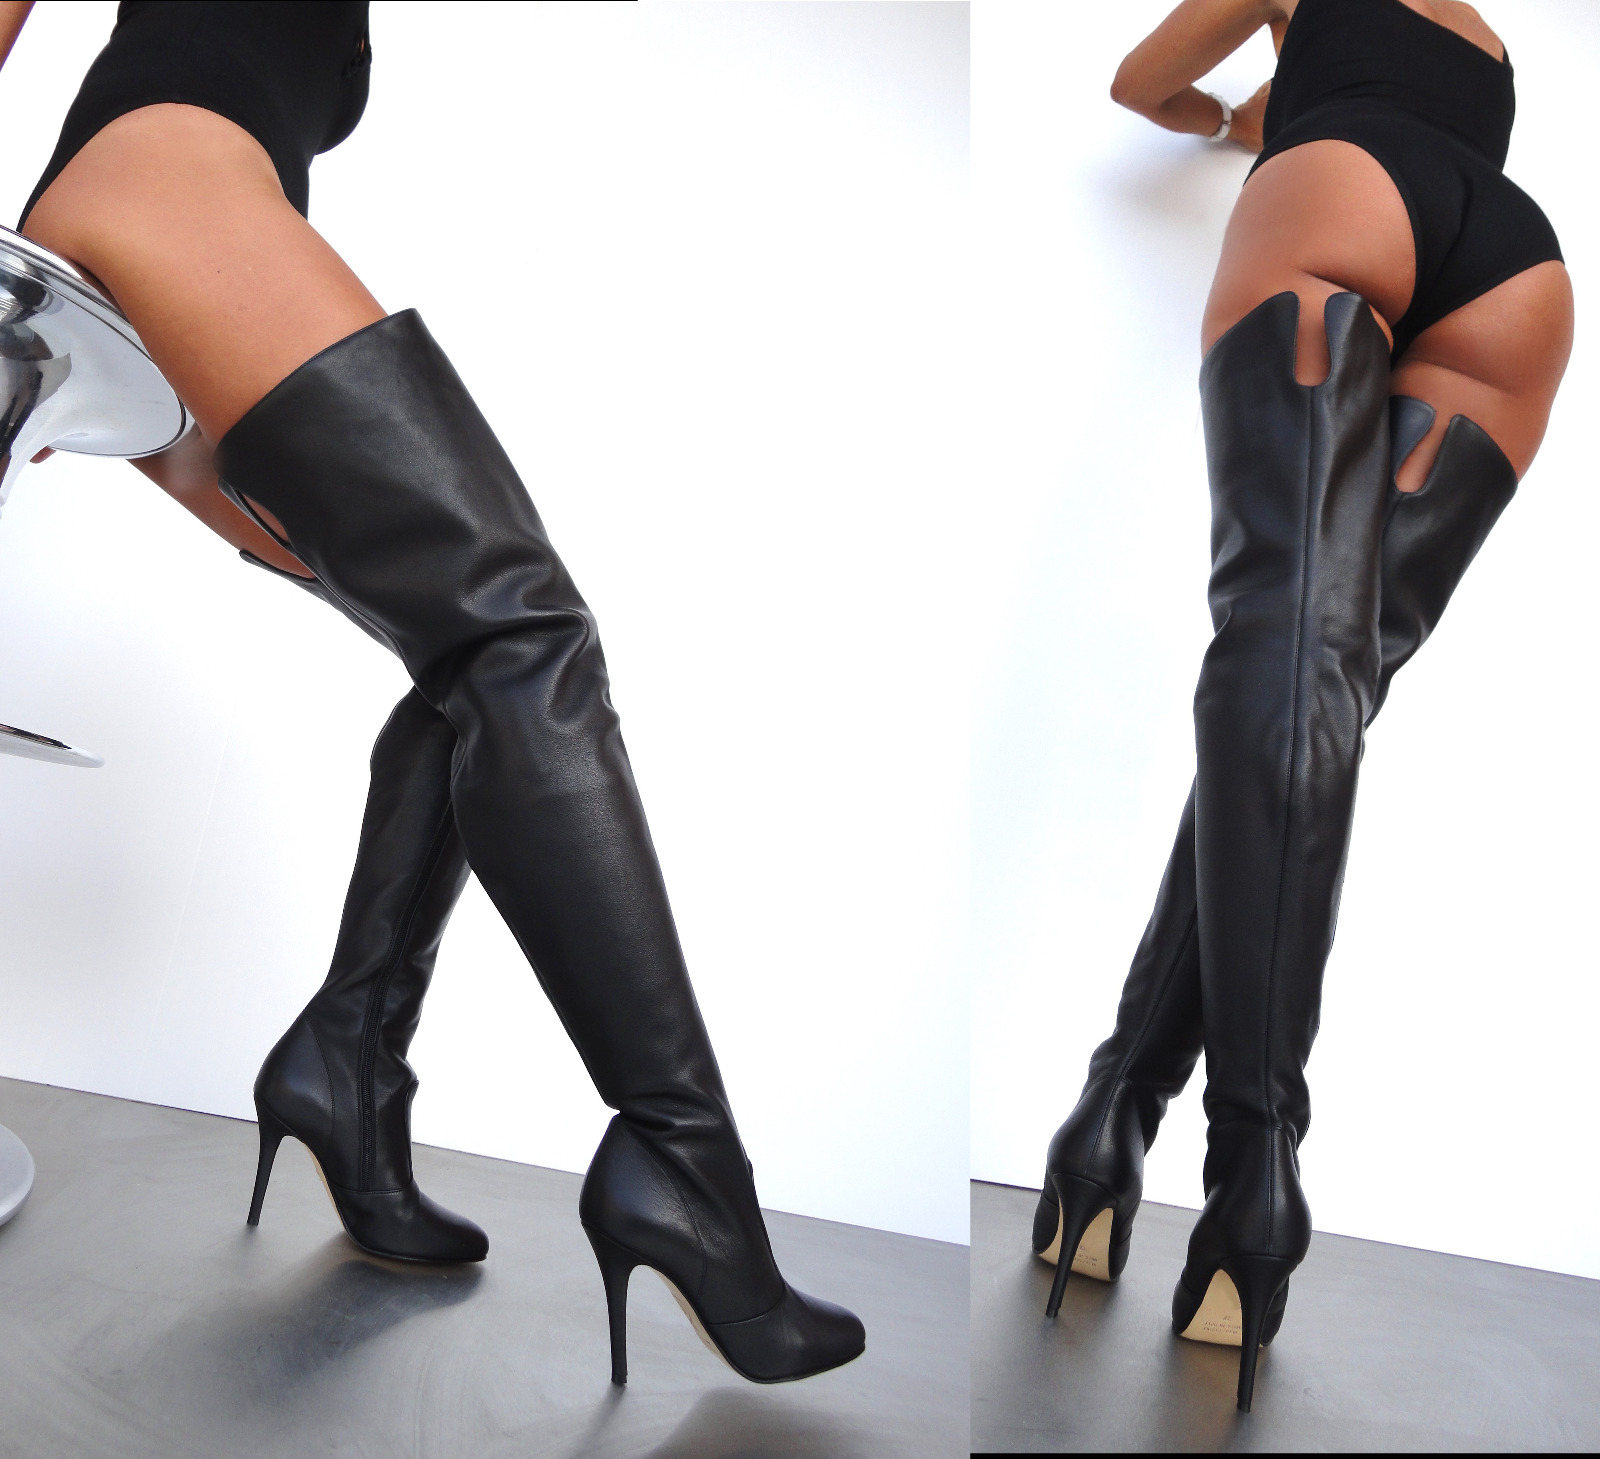 GIOHEL ITALY OVERKNEE STIEFEL LEATHER BOOTS HEELS BOTAS STIVALI LEATHER STIEFEL BLACK NERO 42 203a1e